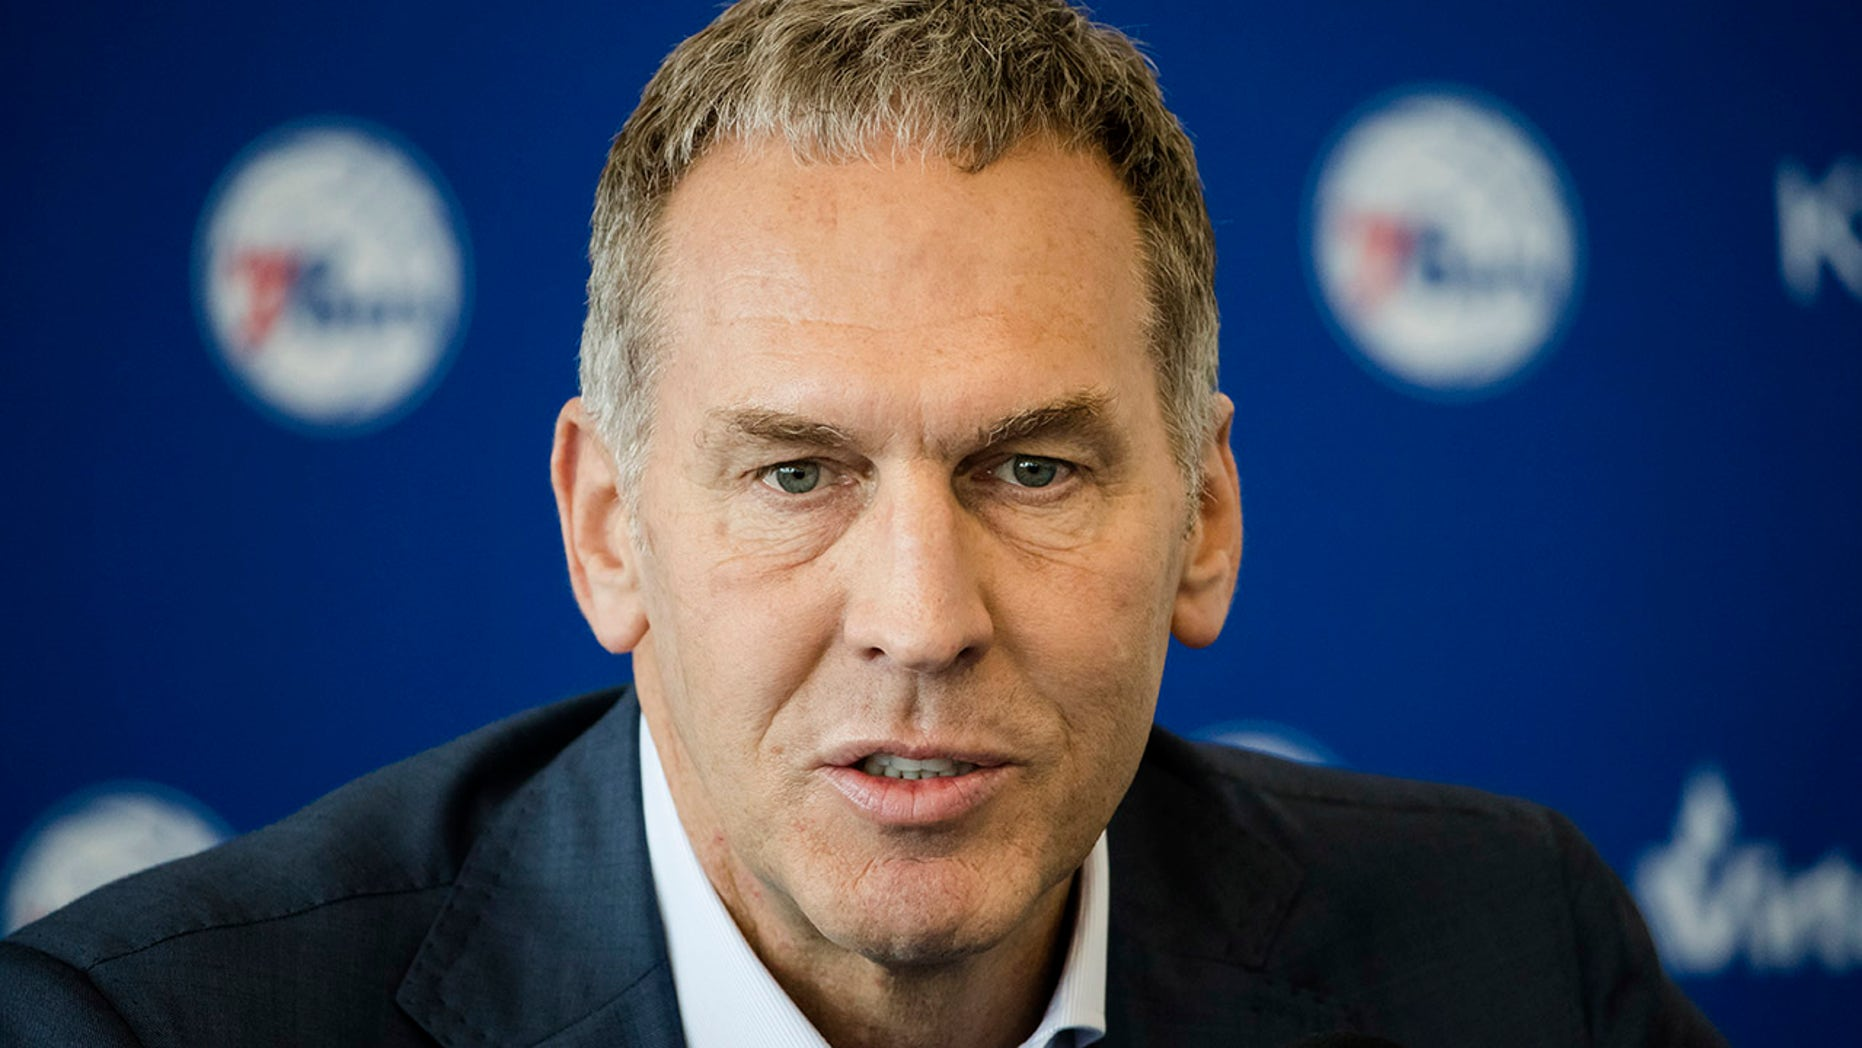 Philadelphia 76ers general manager Bryan Colangelo speaks during a news conference at the NBA basketball team's practice facility in Camden, N.J.